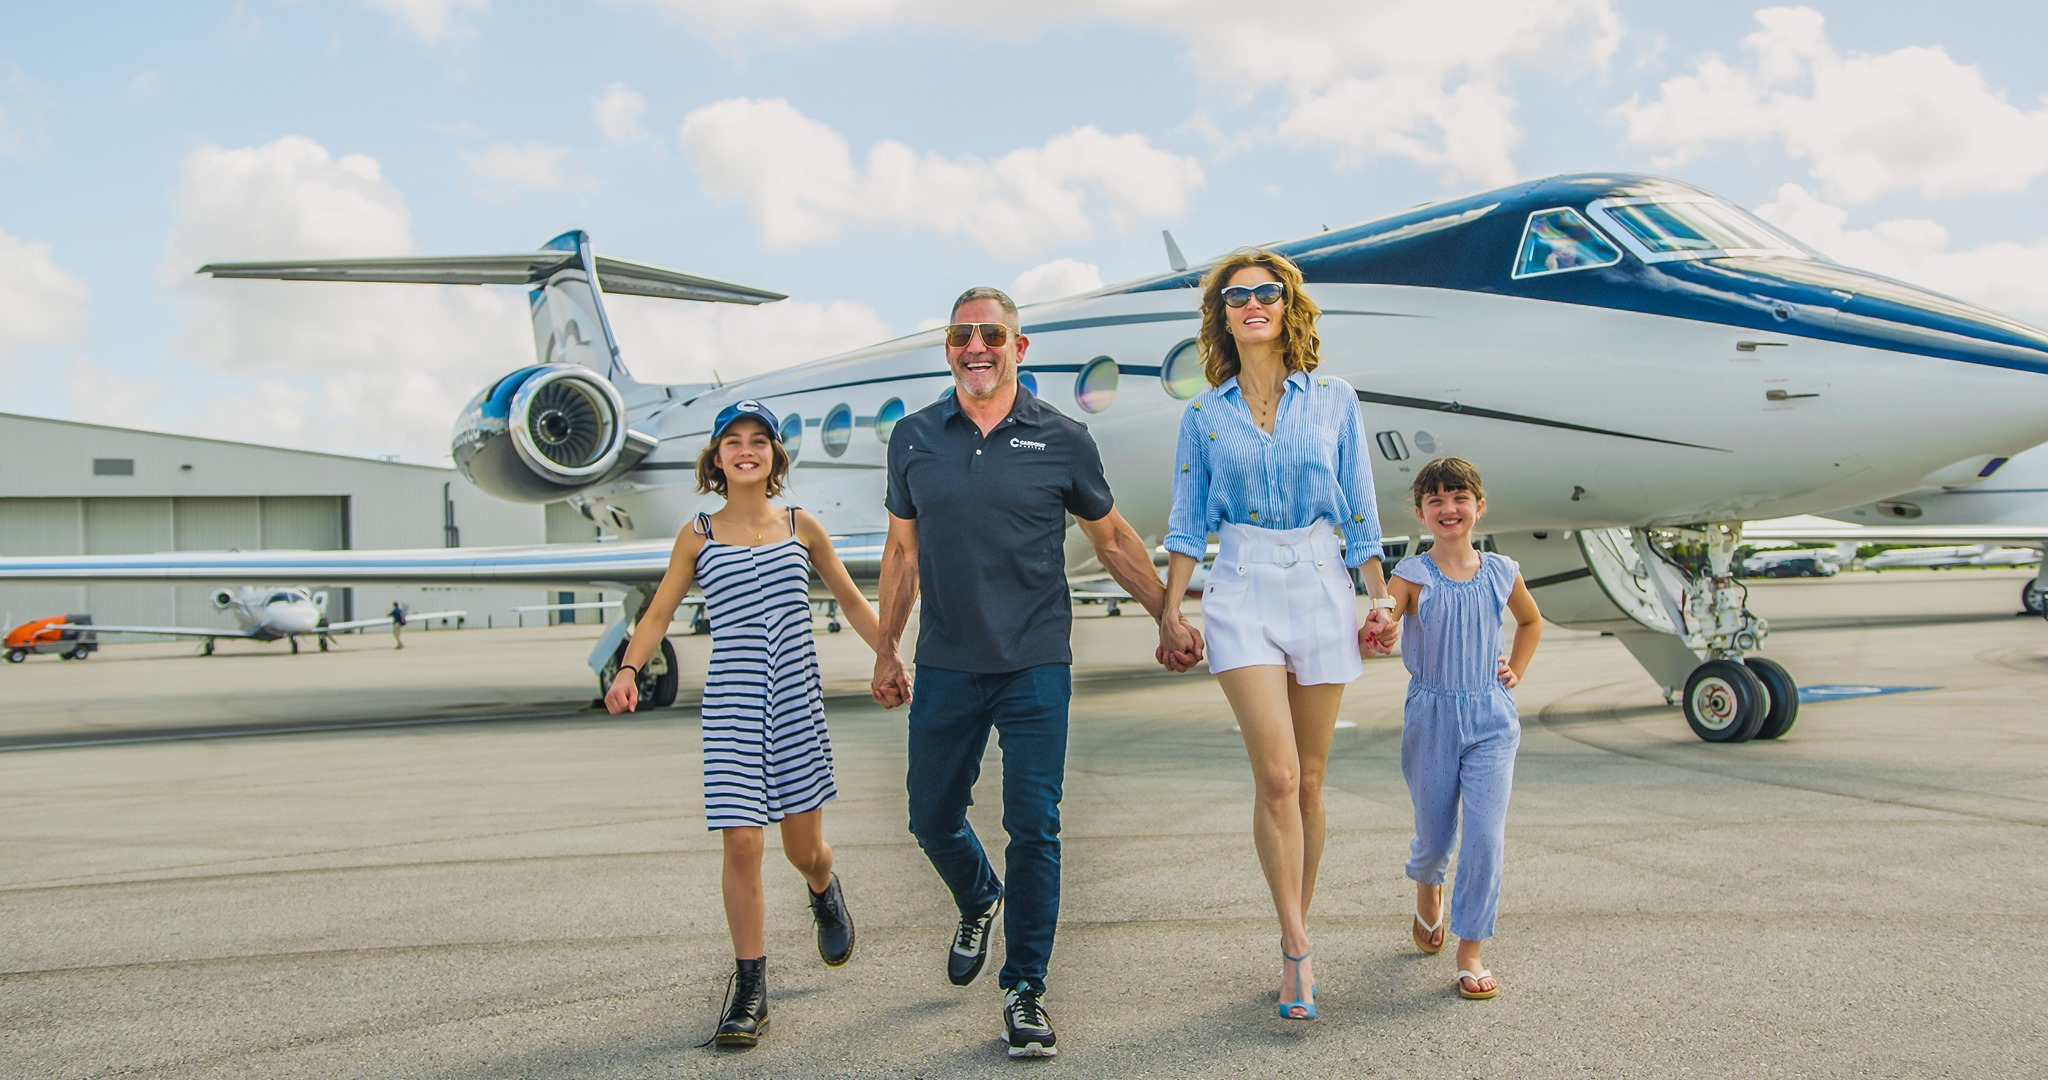 Grant Cardone Photo with Family